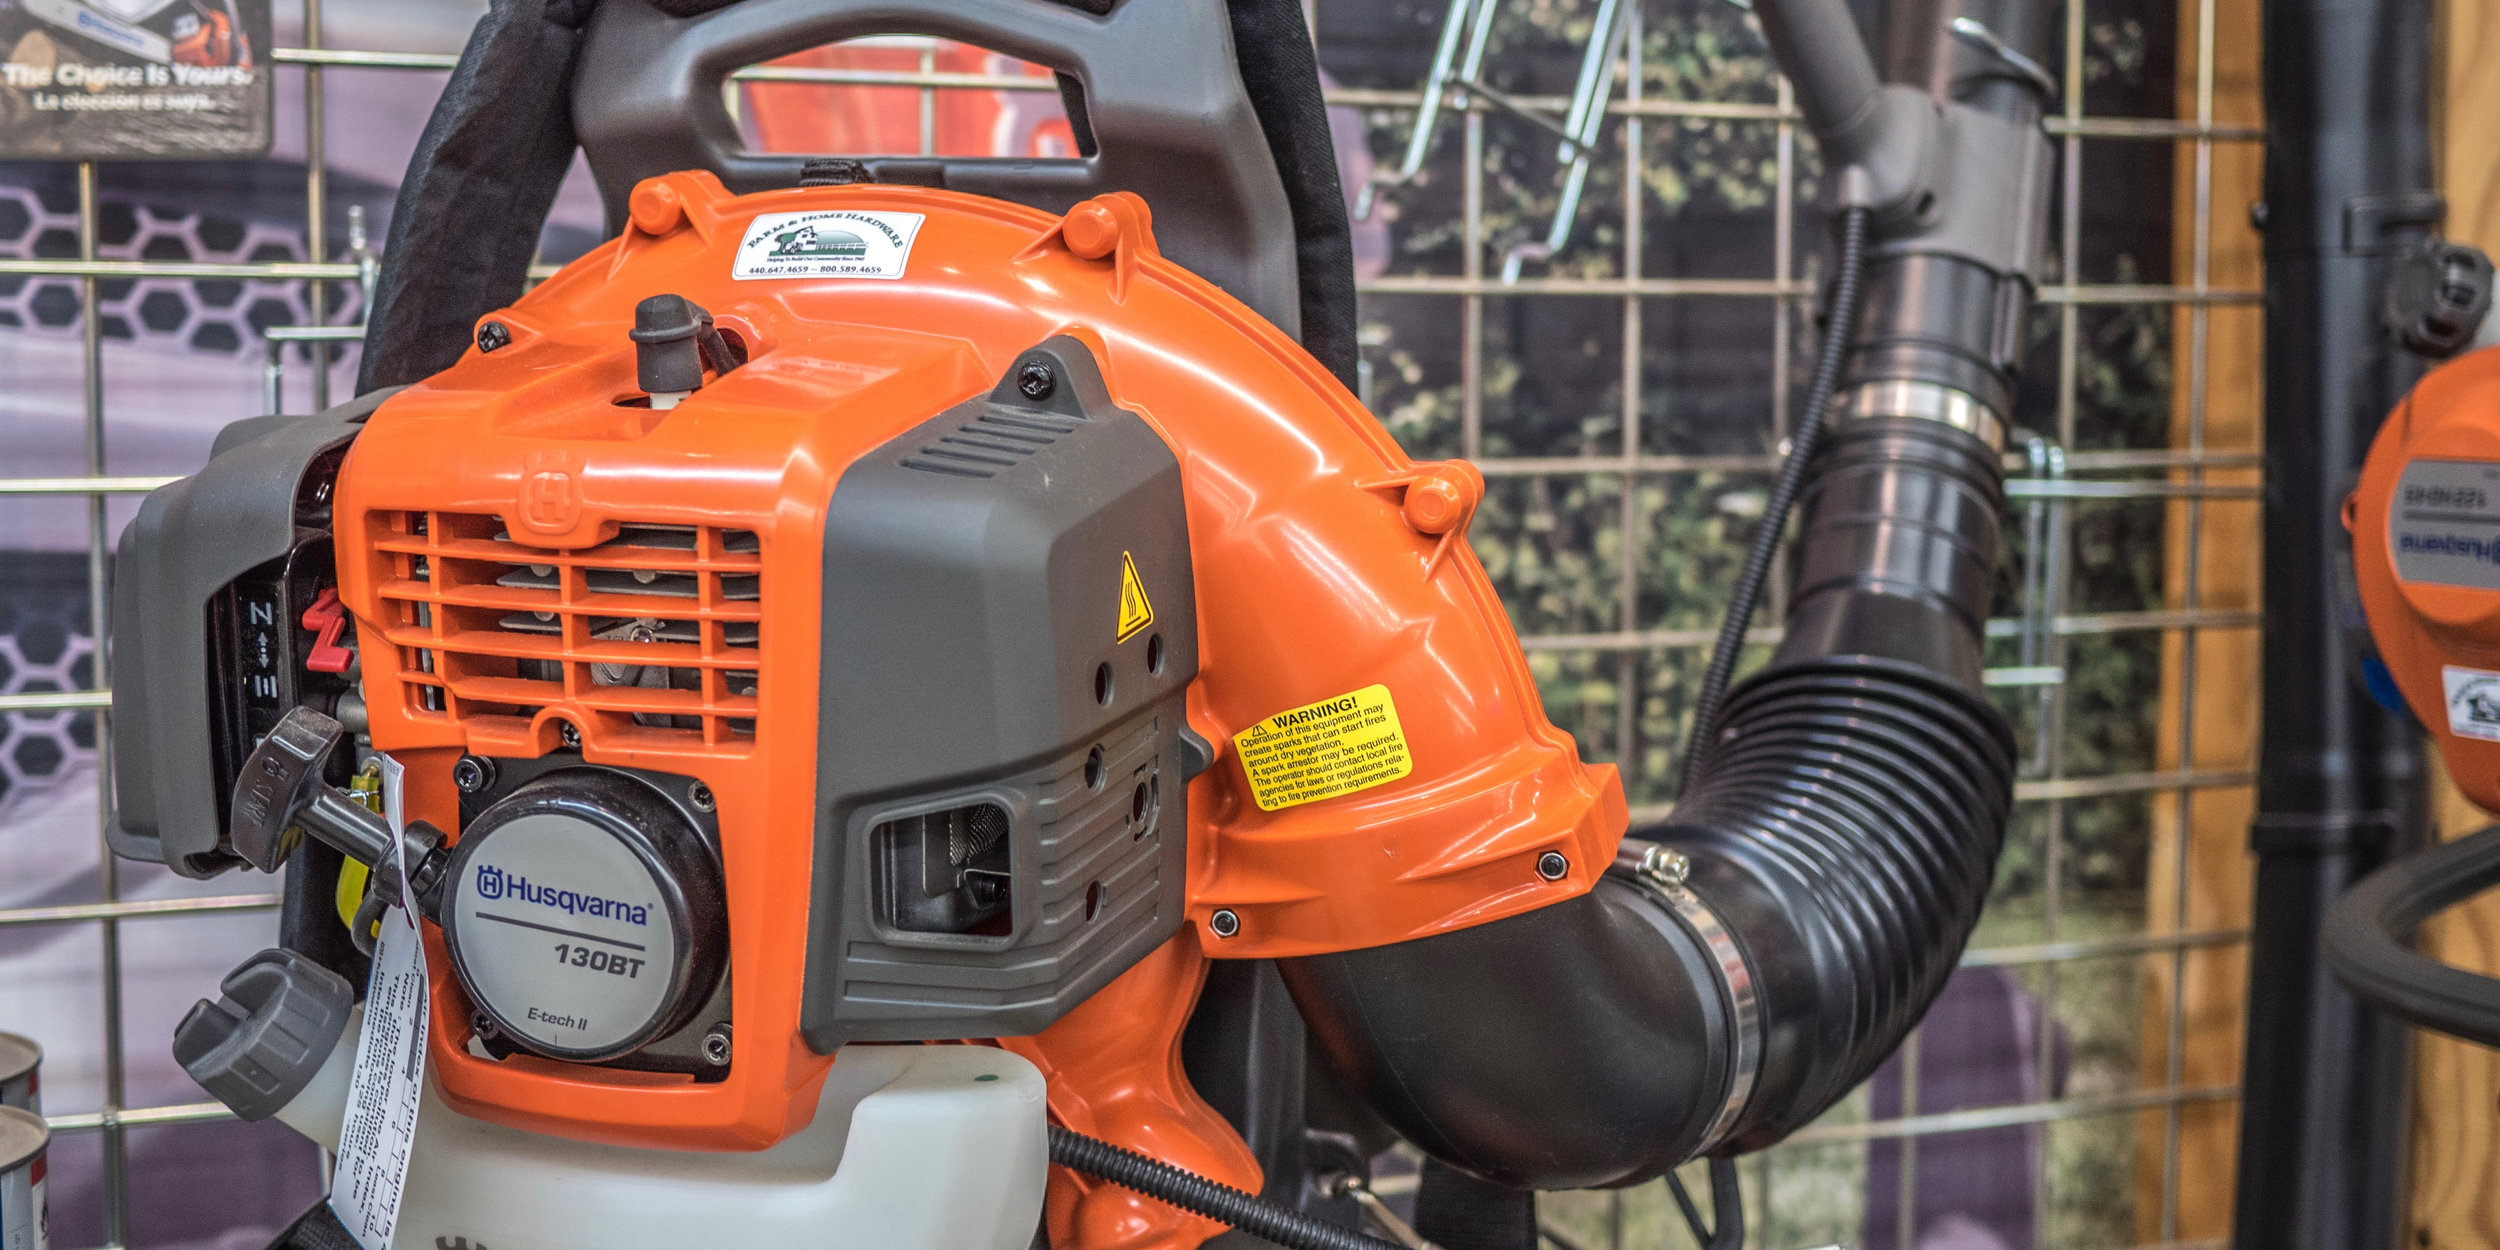 •Looking for a blower? This department includes a wall dedicated to just that. We carry everything from small handheld models, to medium duty backpack units. - *Financing may be available on select models